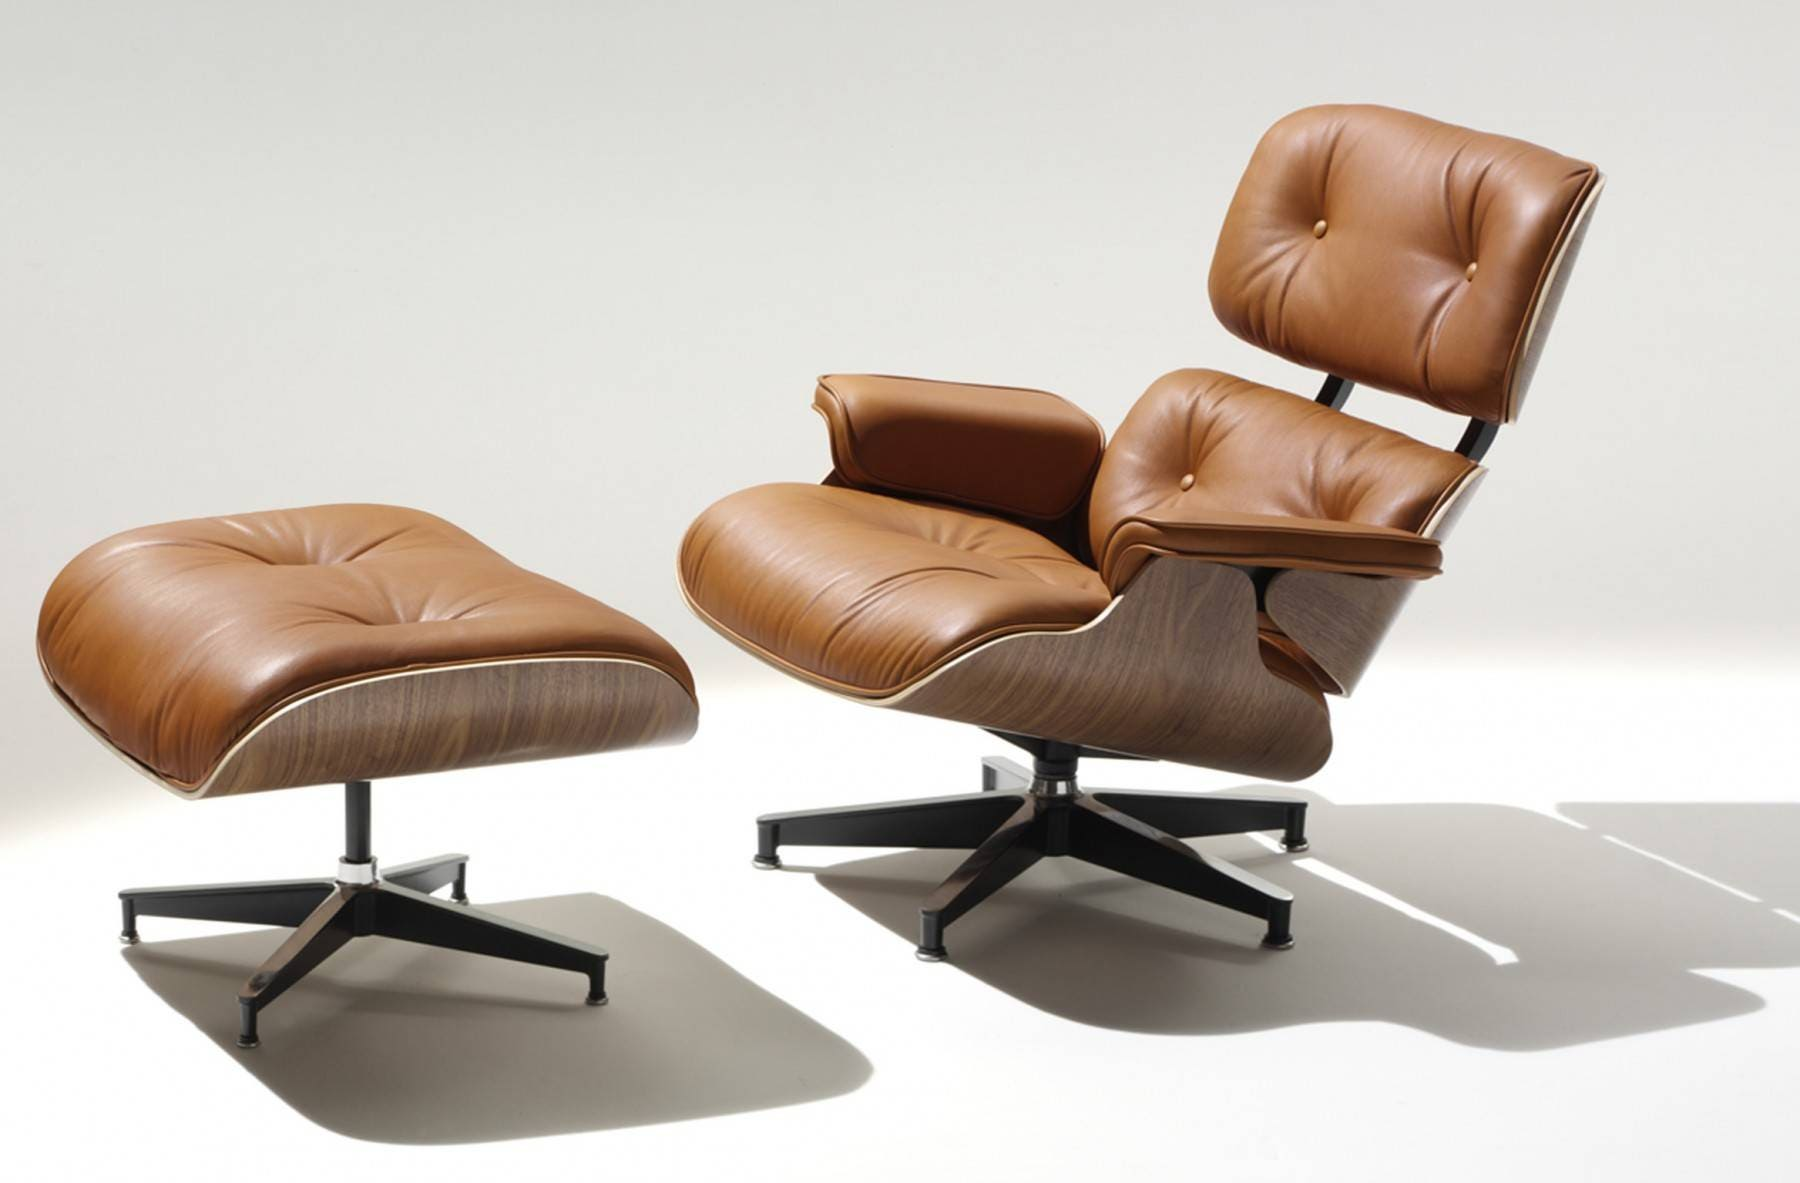 De Eames Stoel : Herman miller eames® lounge chair and ottoman gr shop canada